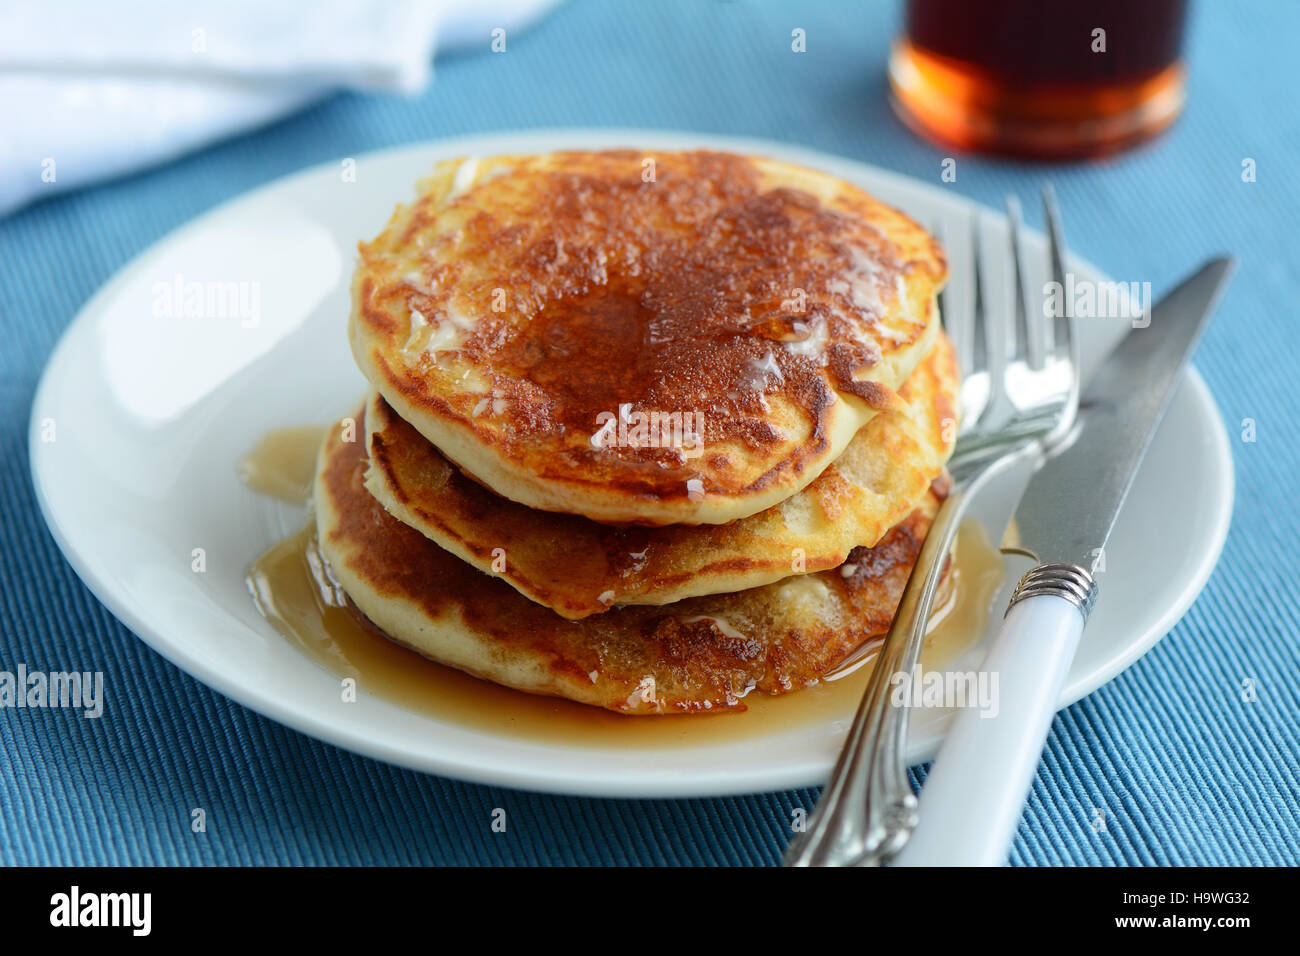 Fresh home made buttermilk pancakes with maple syrup shot in natural light - Stock Image